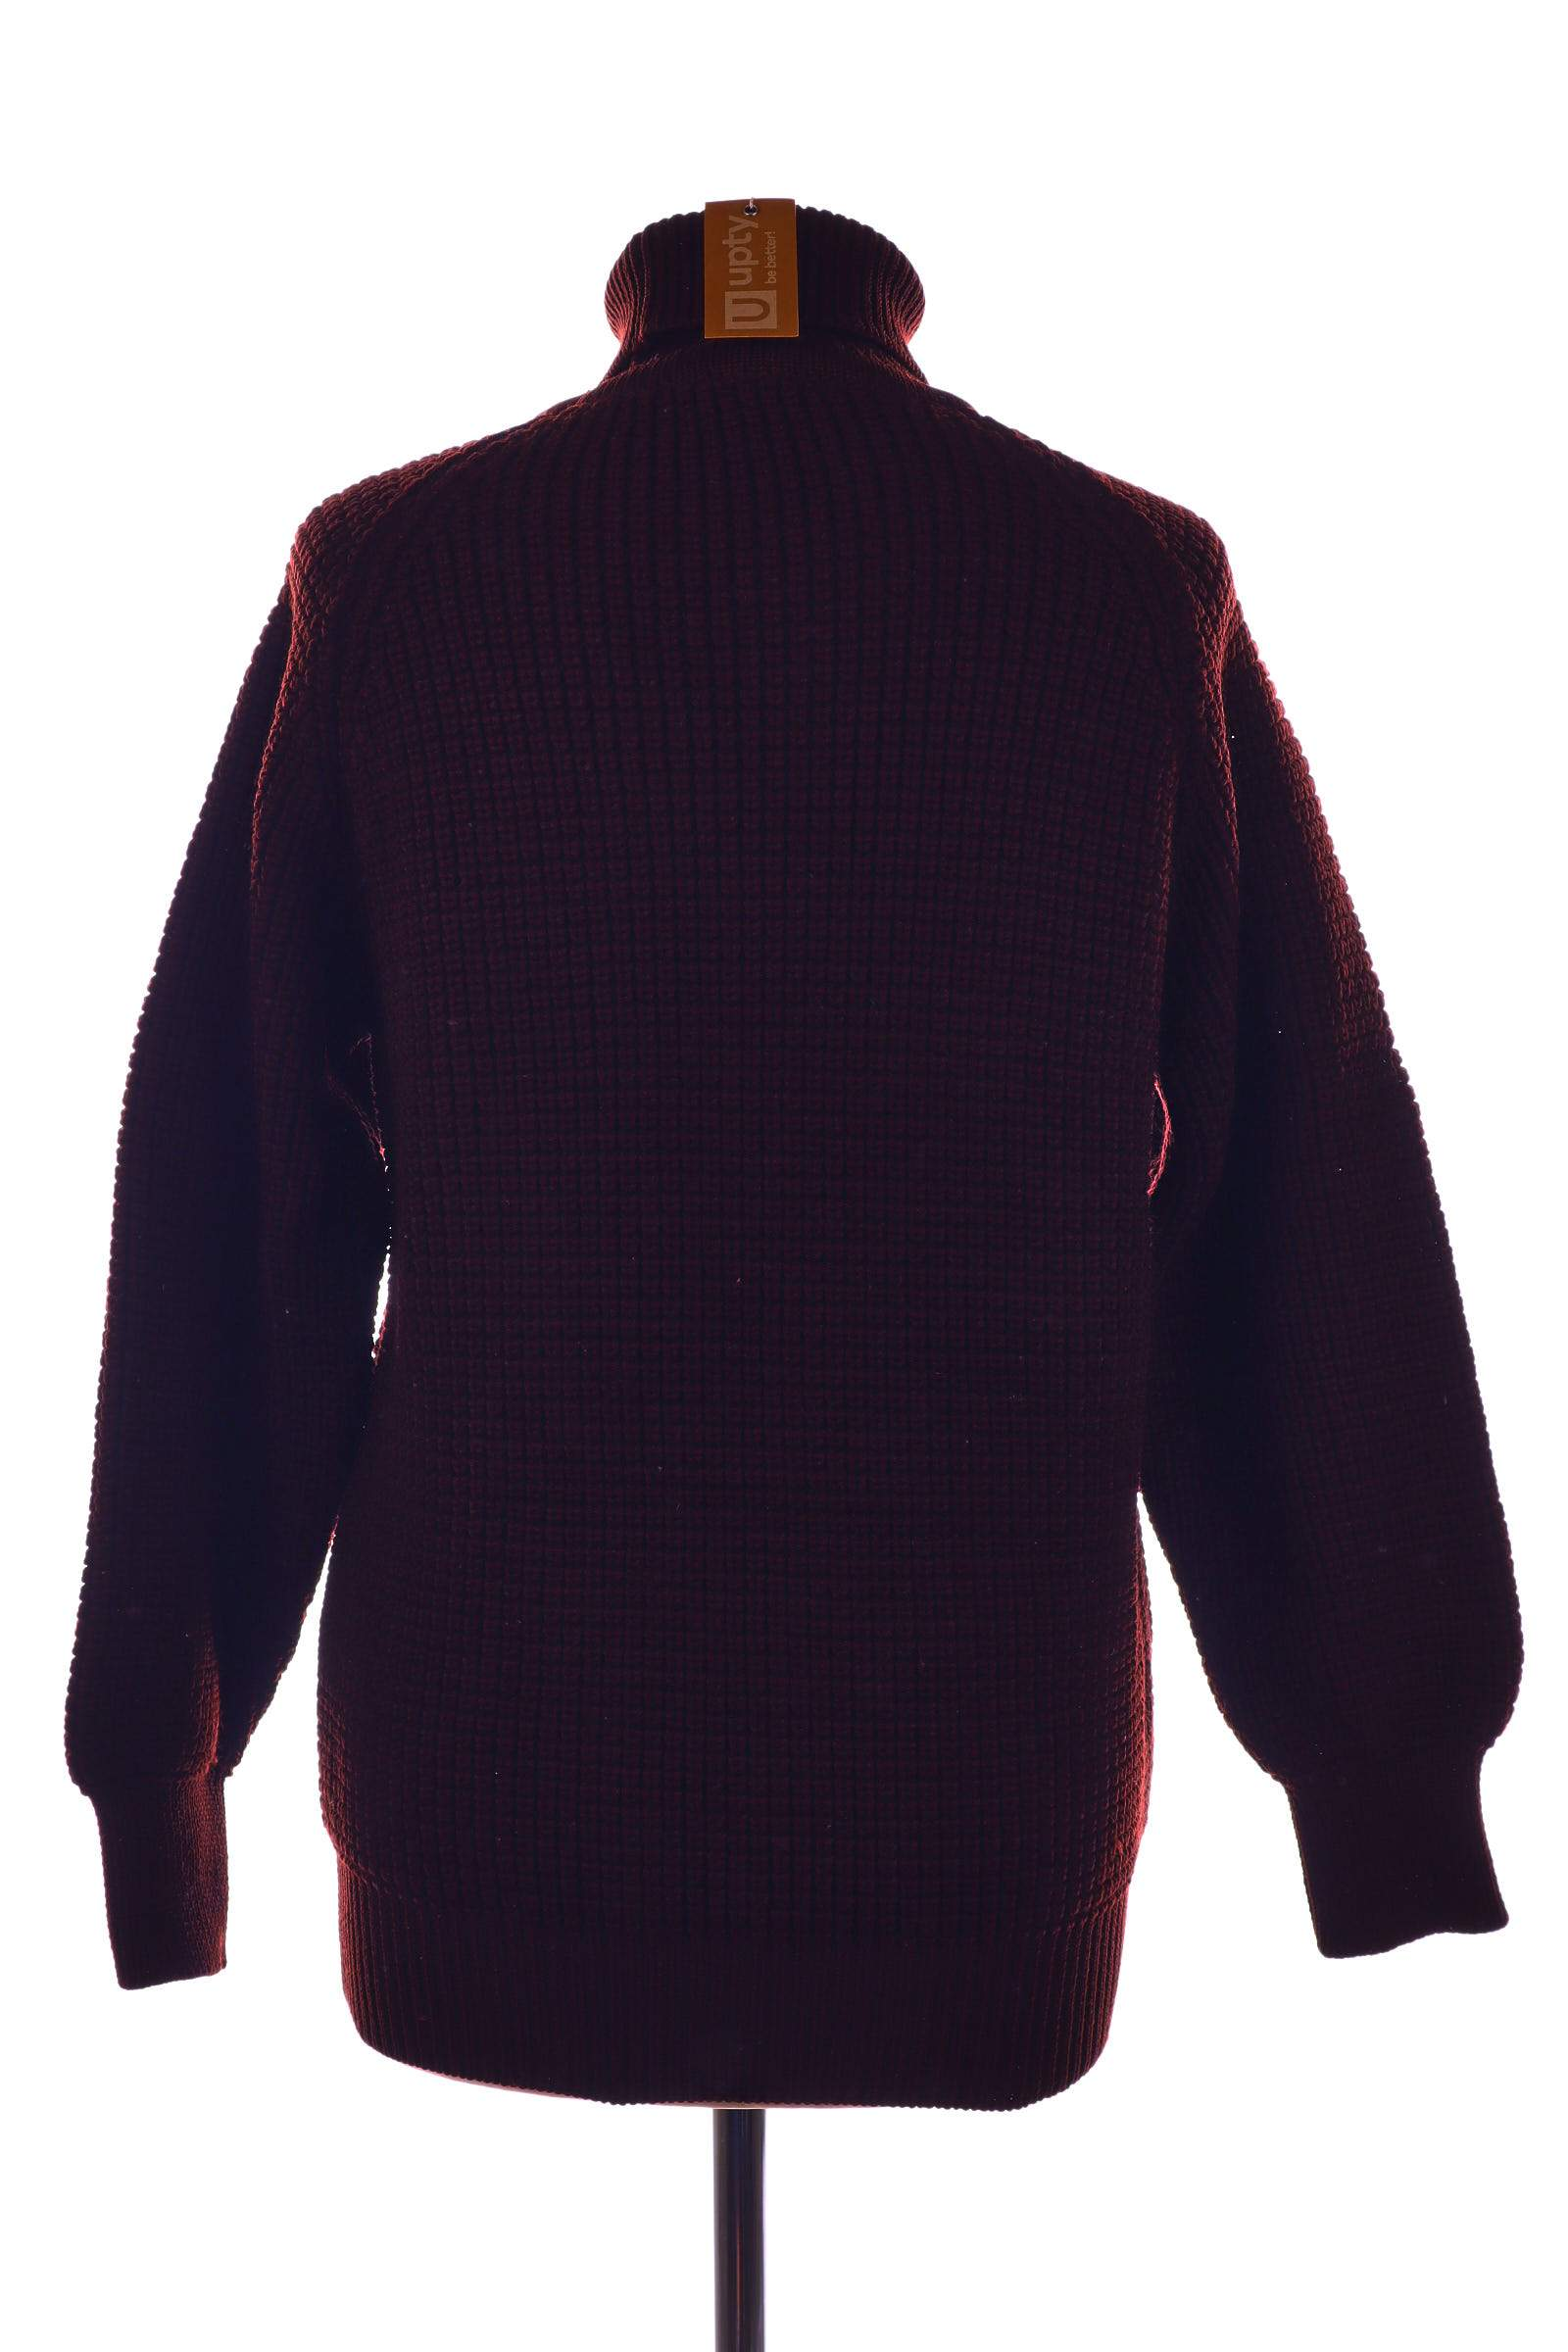 Bodewa Brown Sweater